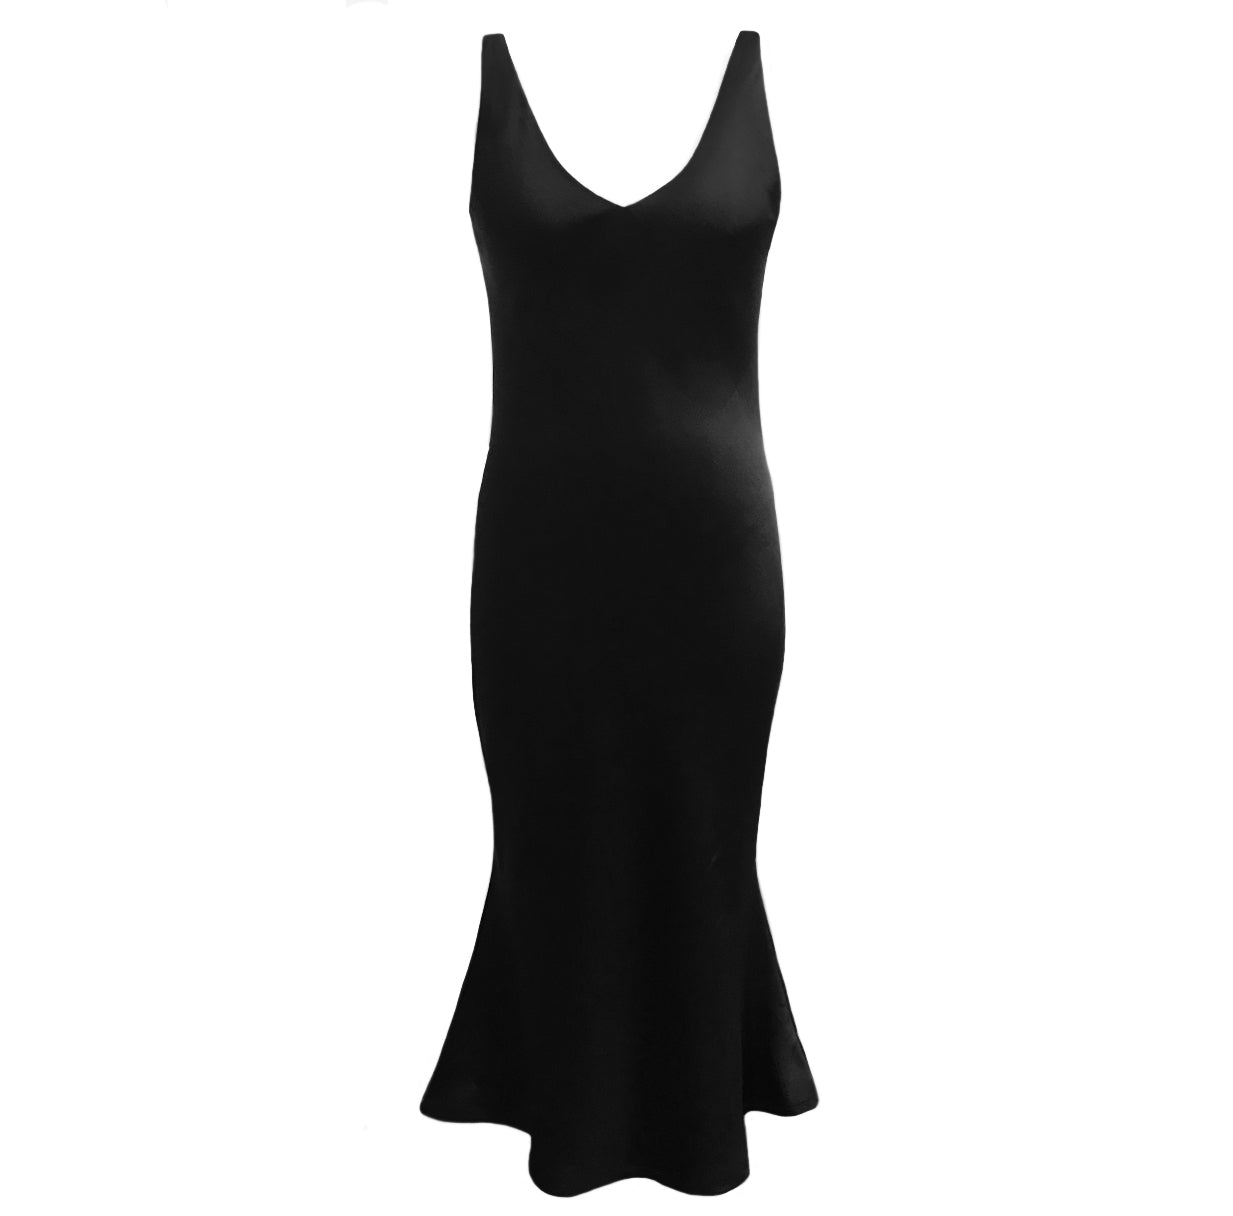 The Eden Deep V Slip Dress - COMING SOON